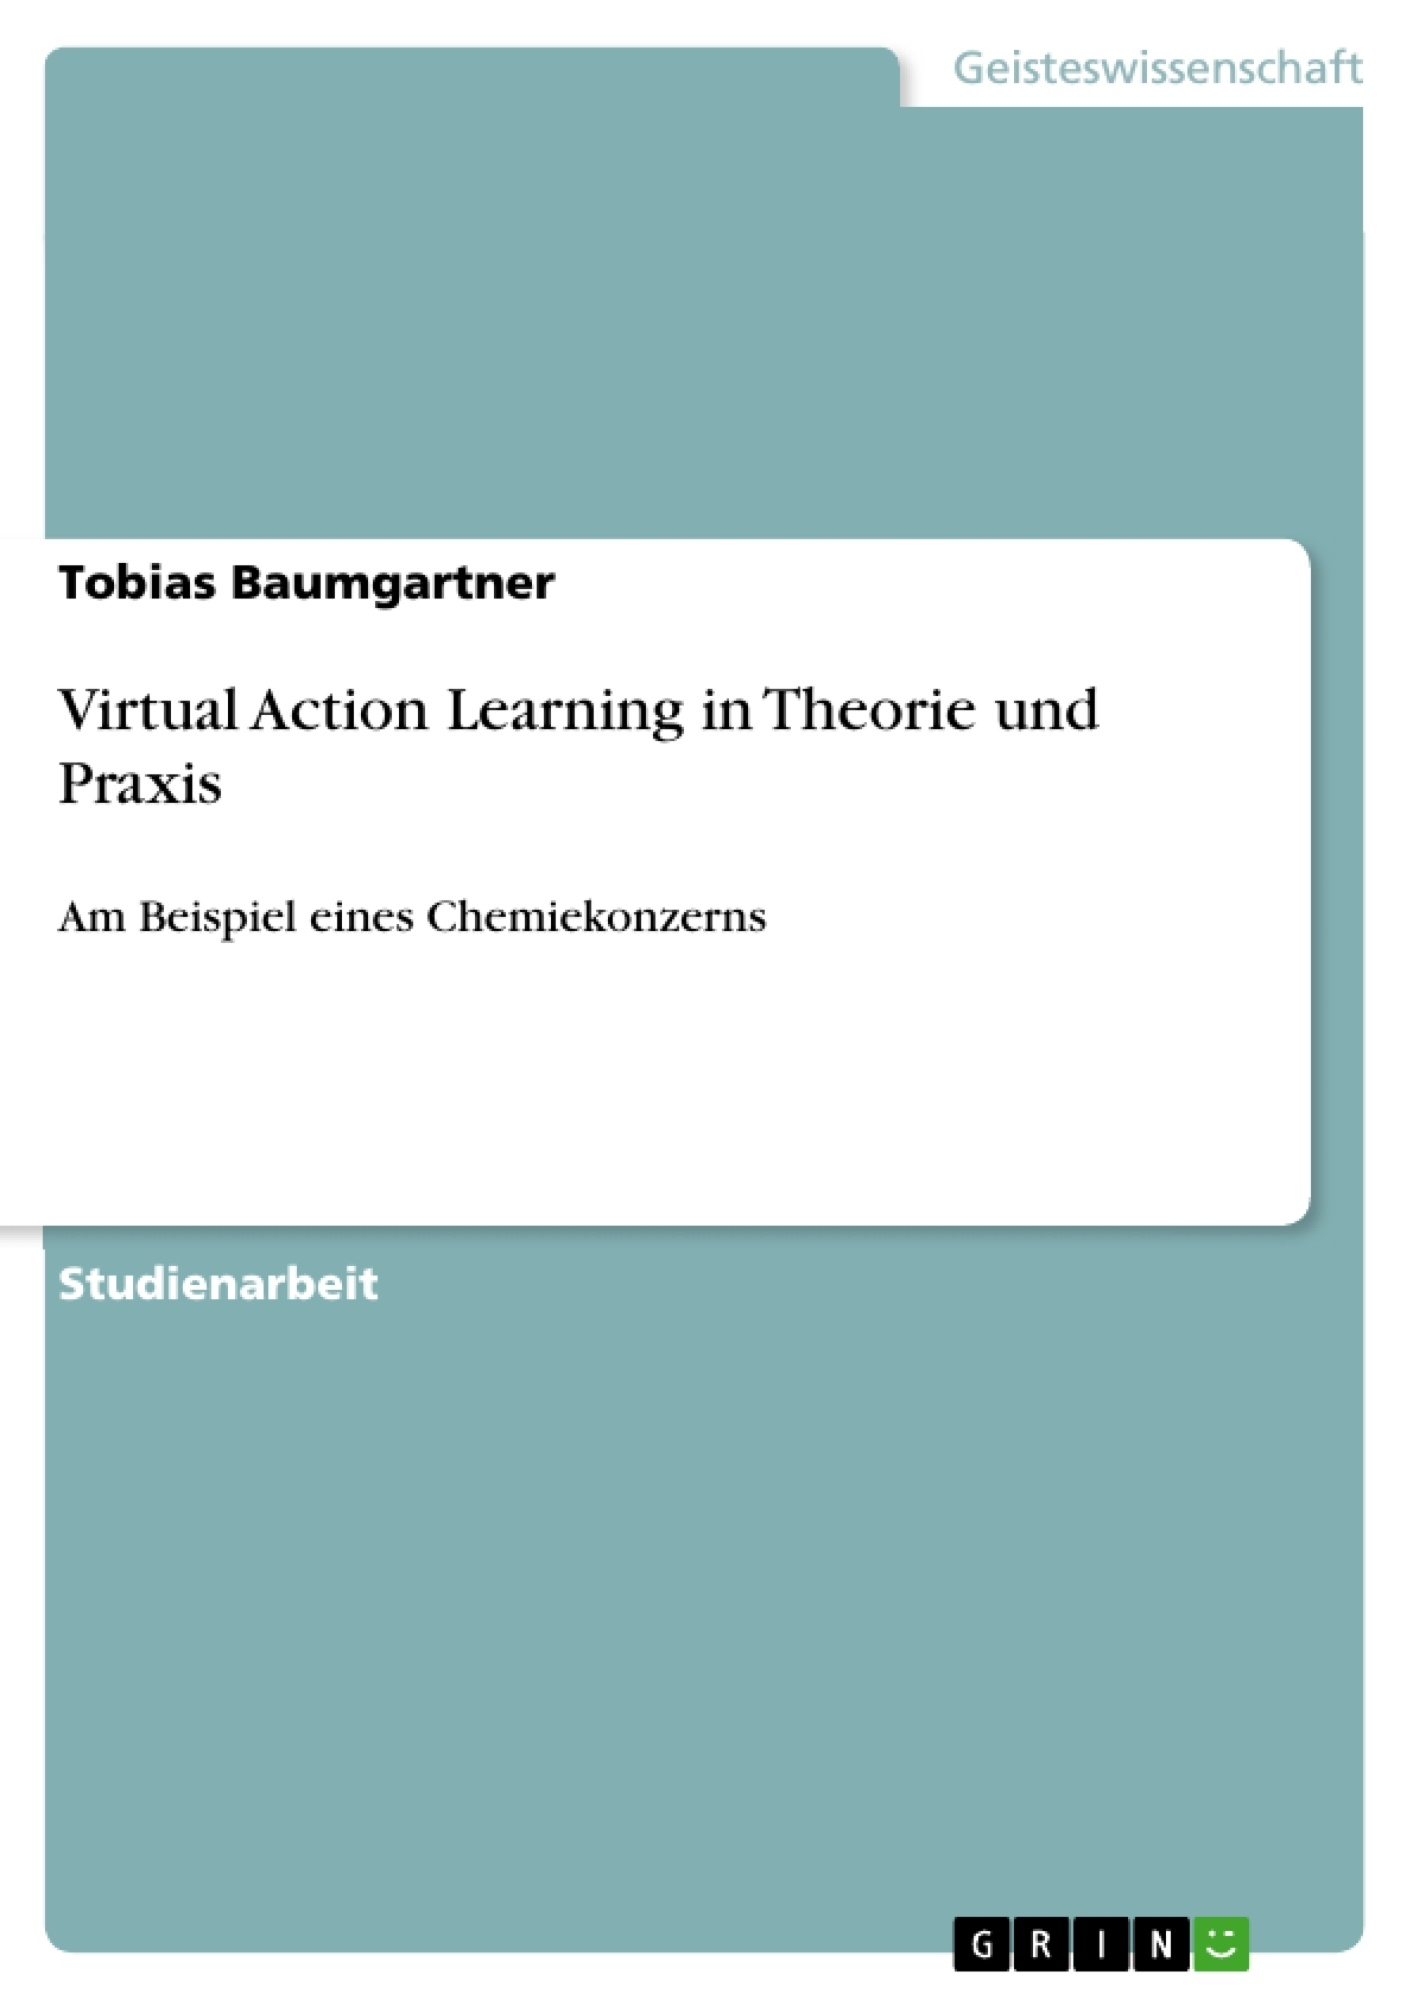 Titel: Virtual Action Learning in Theorie und Praxis